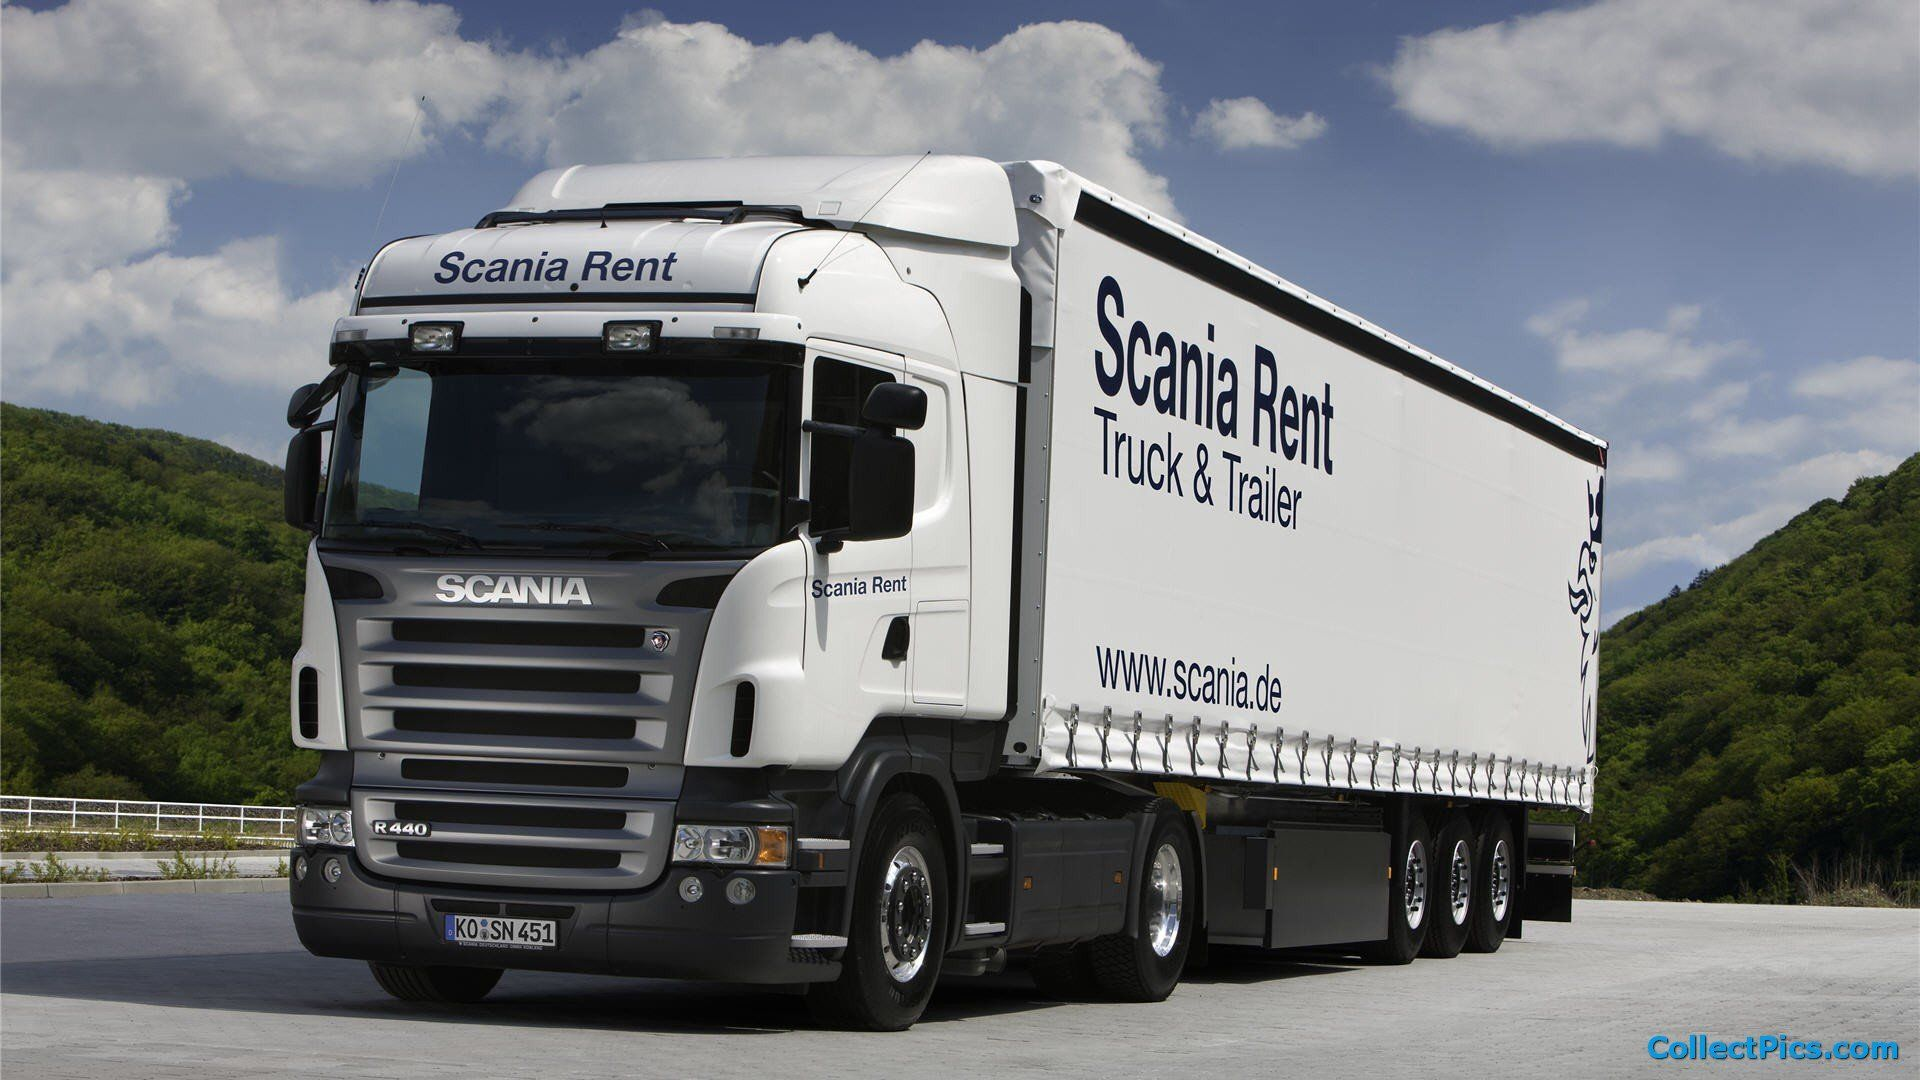 Scania Truck Club Scania Forum Scania Trucks | 3D Wallpapers ...